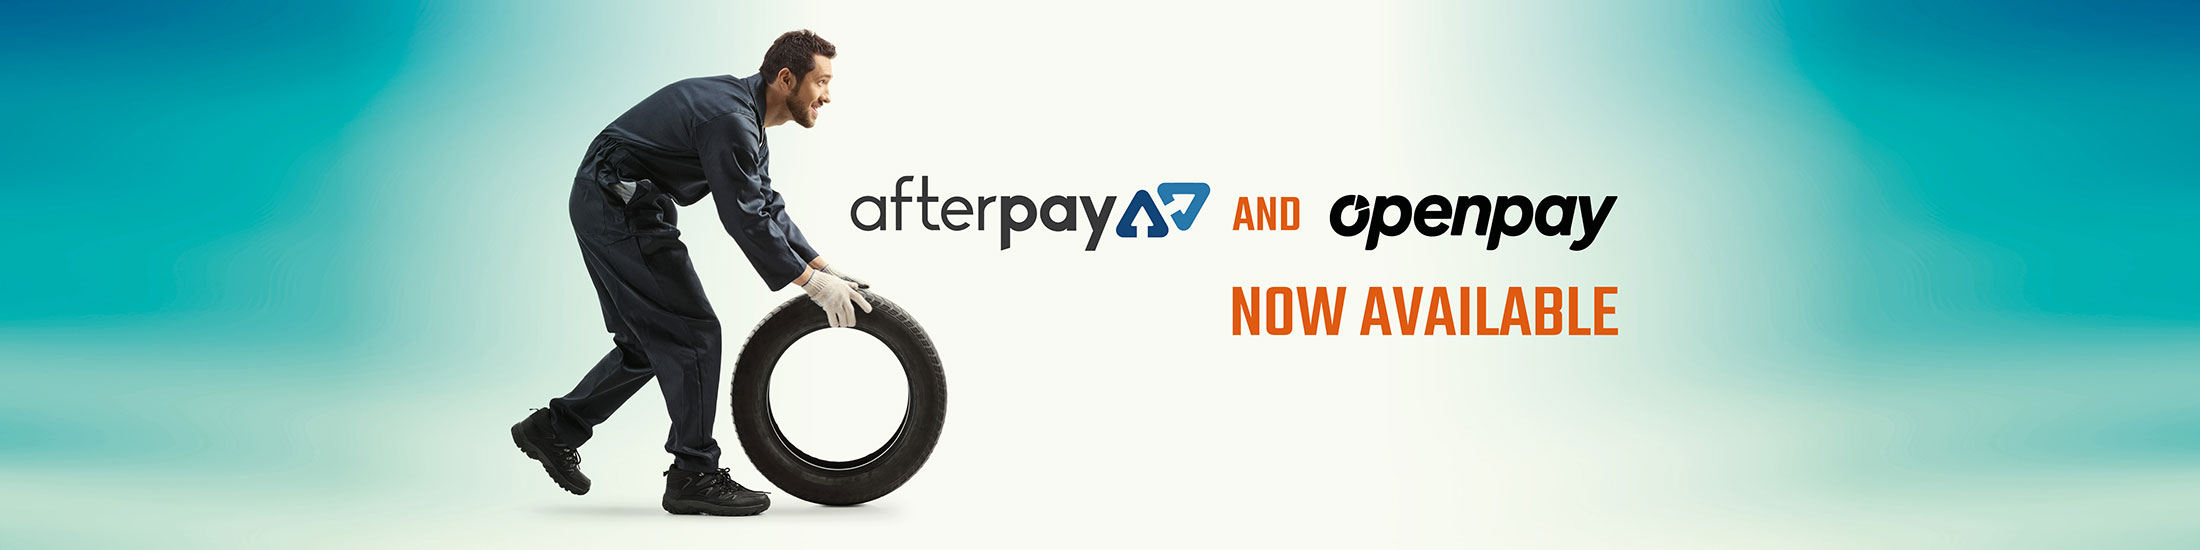 Open Pay And After Pay Available Banner